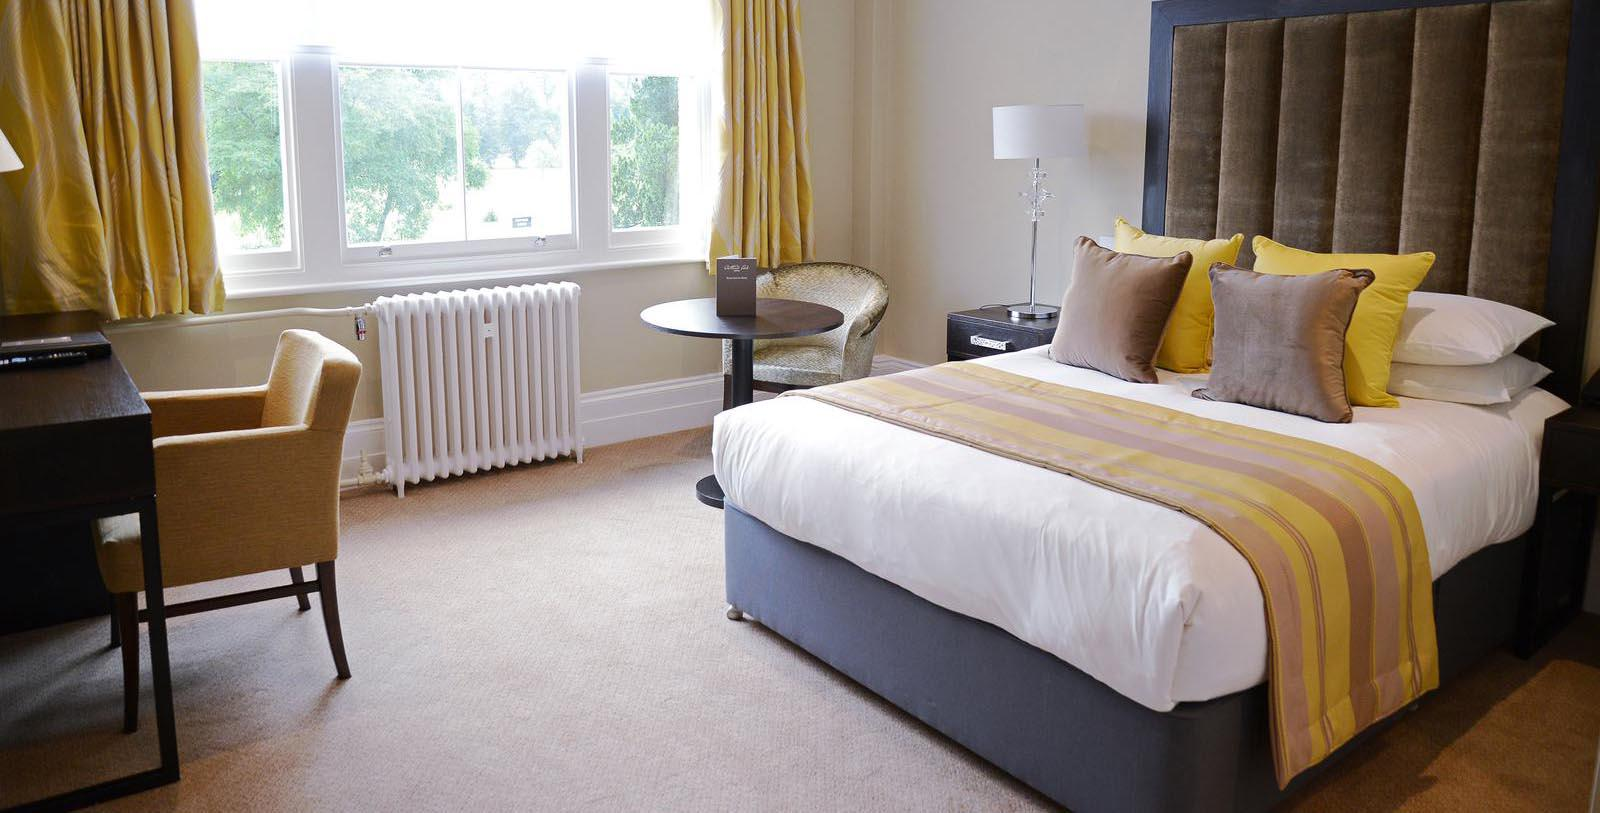 Image of Guestroom Interior Oatlands Park Hotel, 1856, Member of Historic Hotels Worldwide, in Weybridge, England, Location